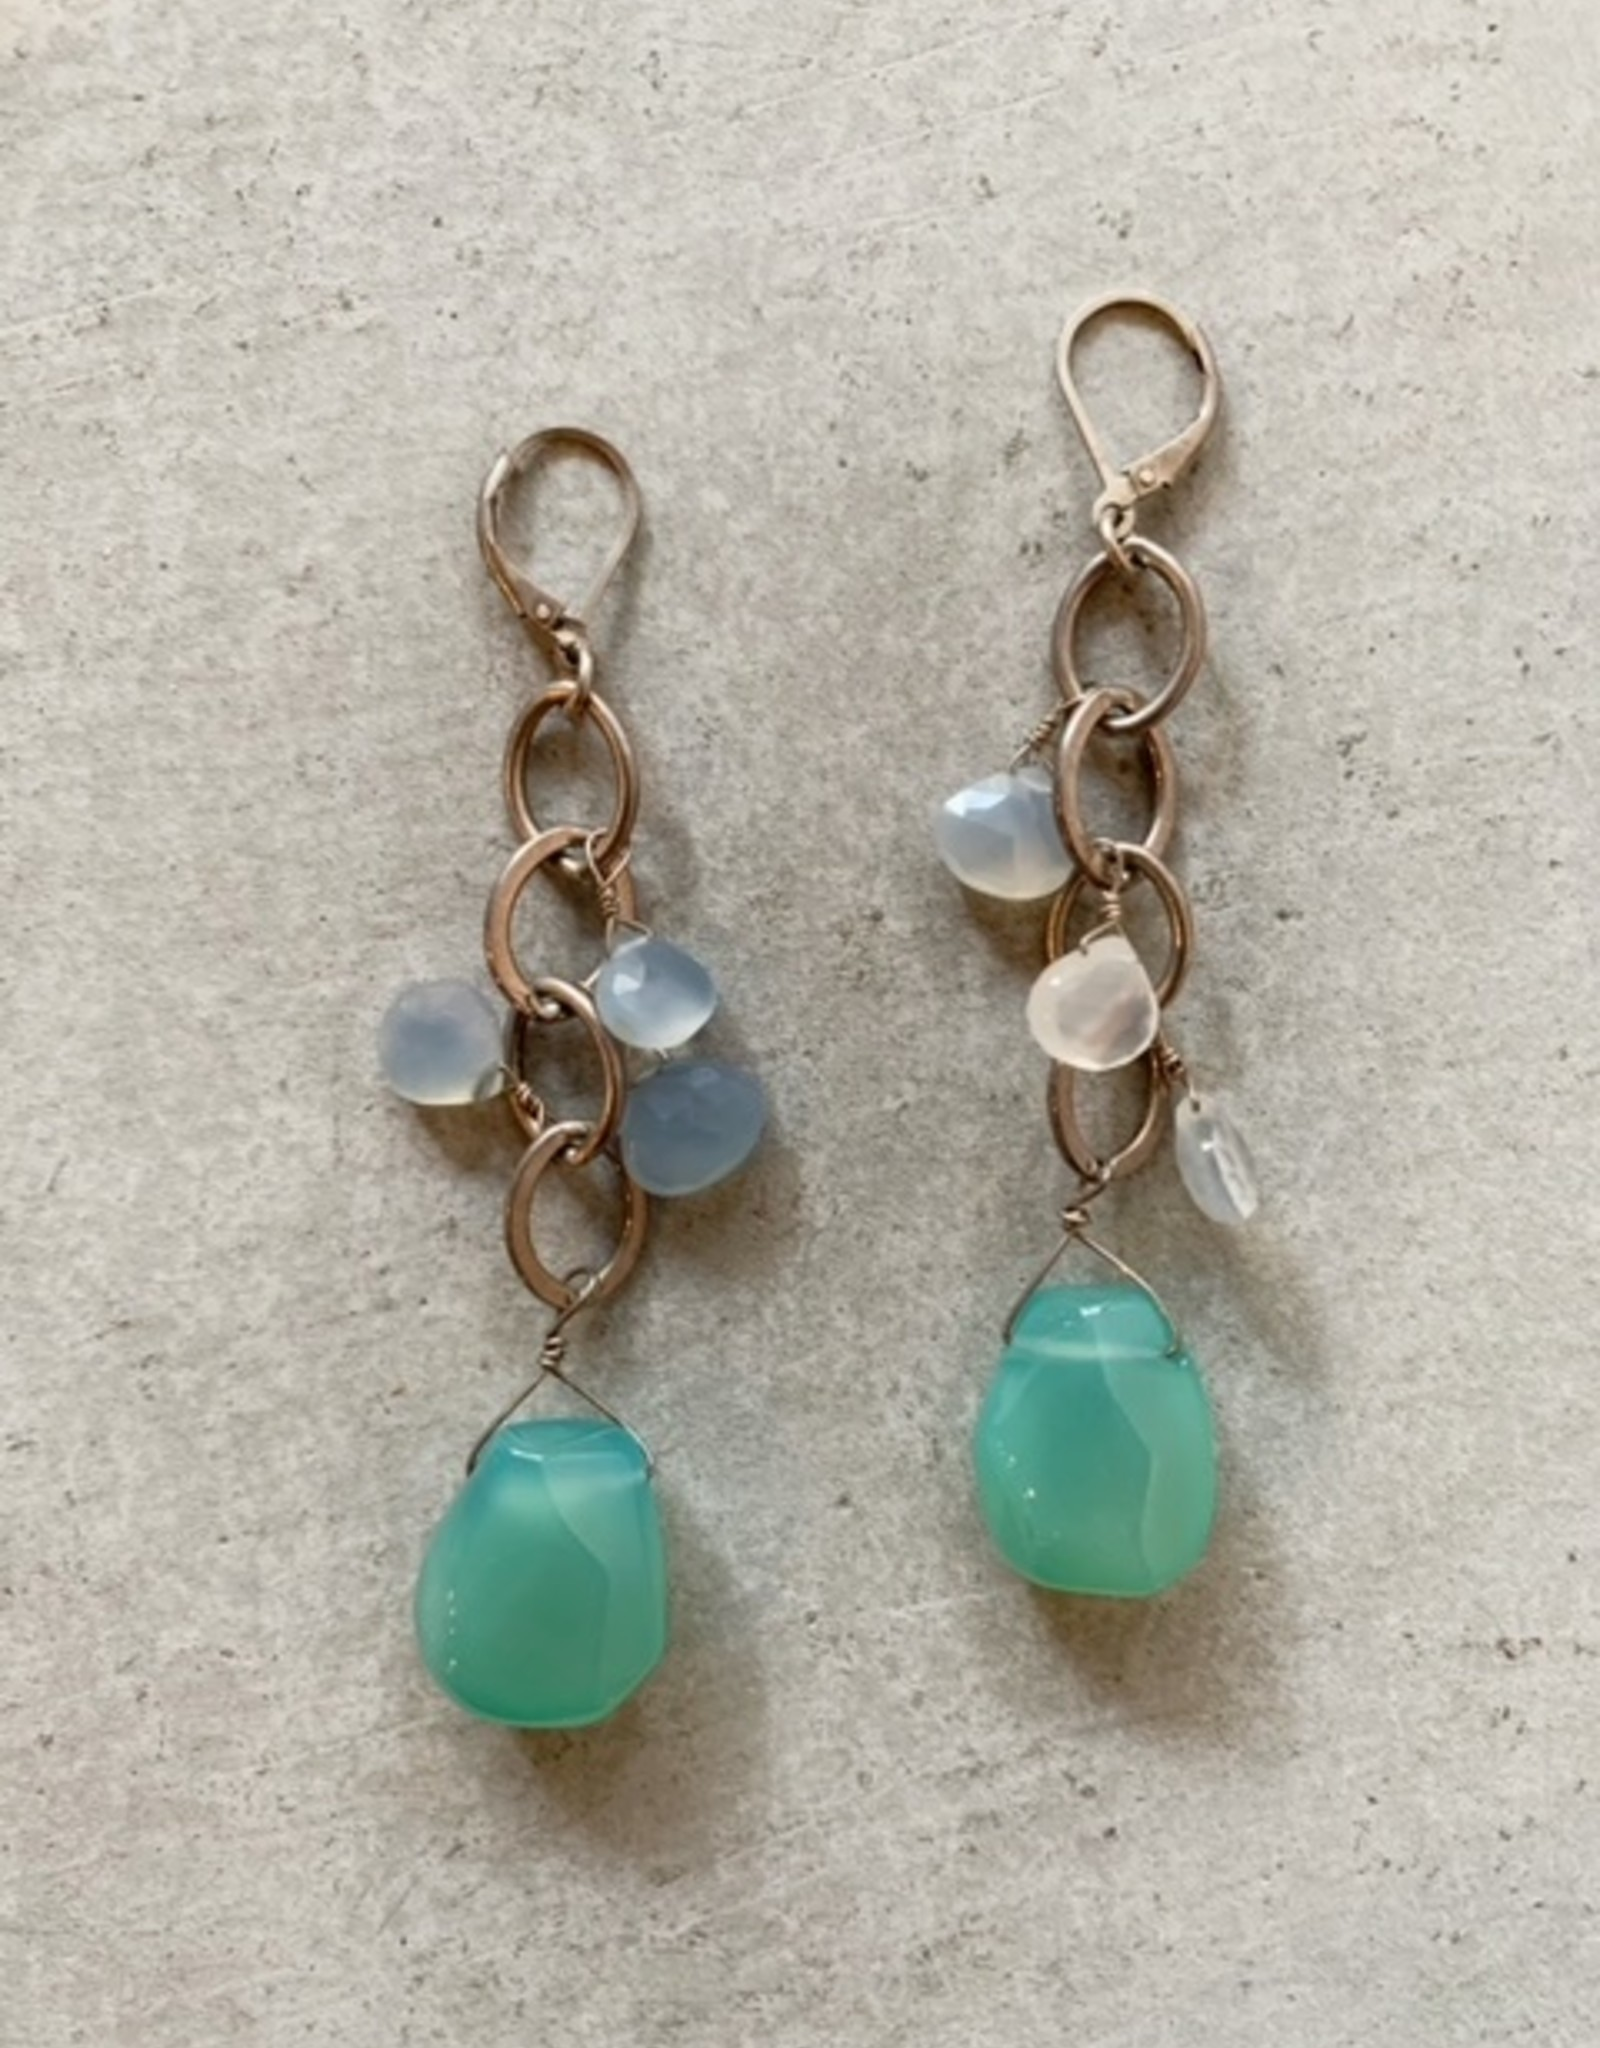 Chalcedony and moonstone drops earrings